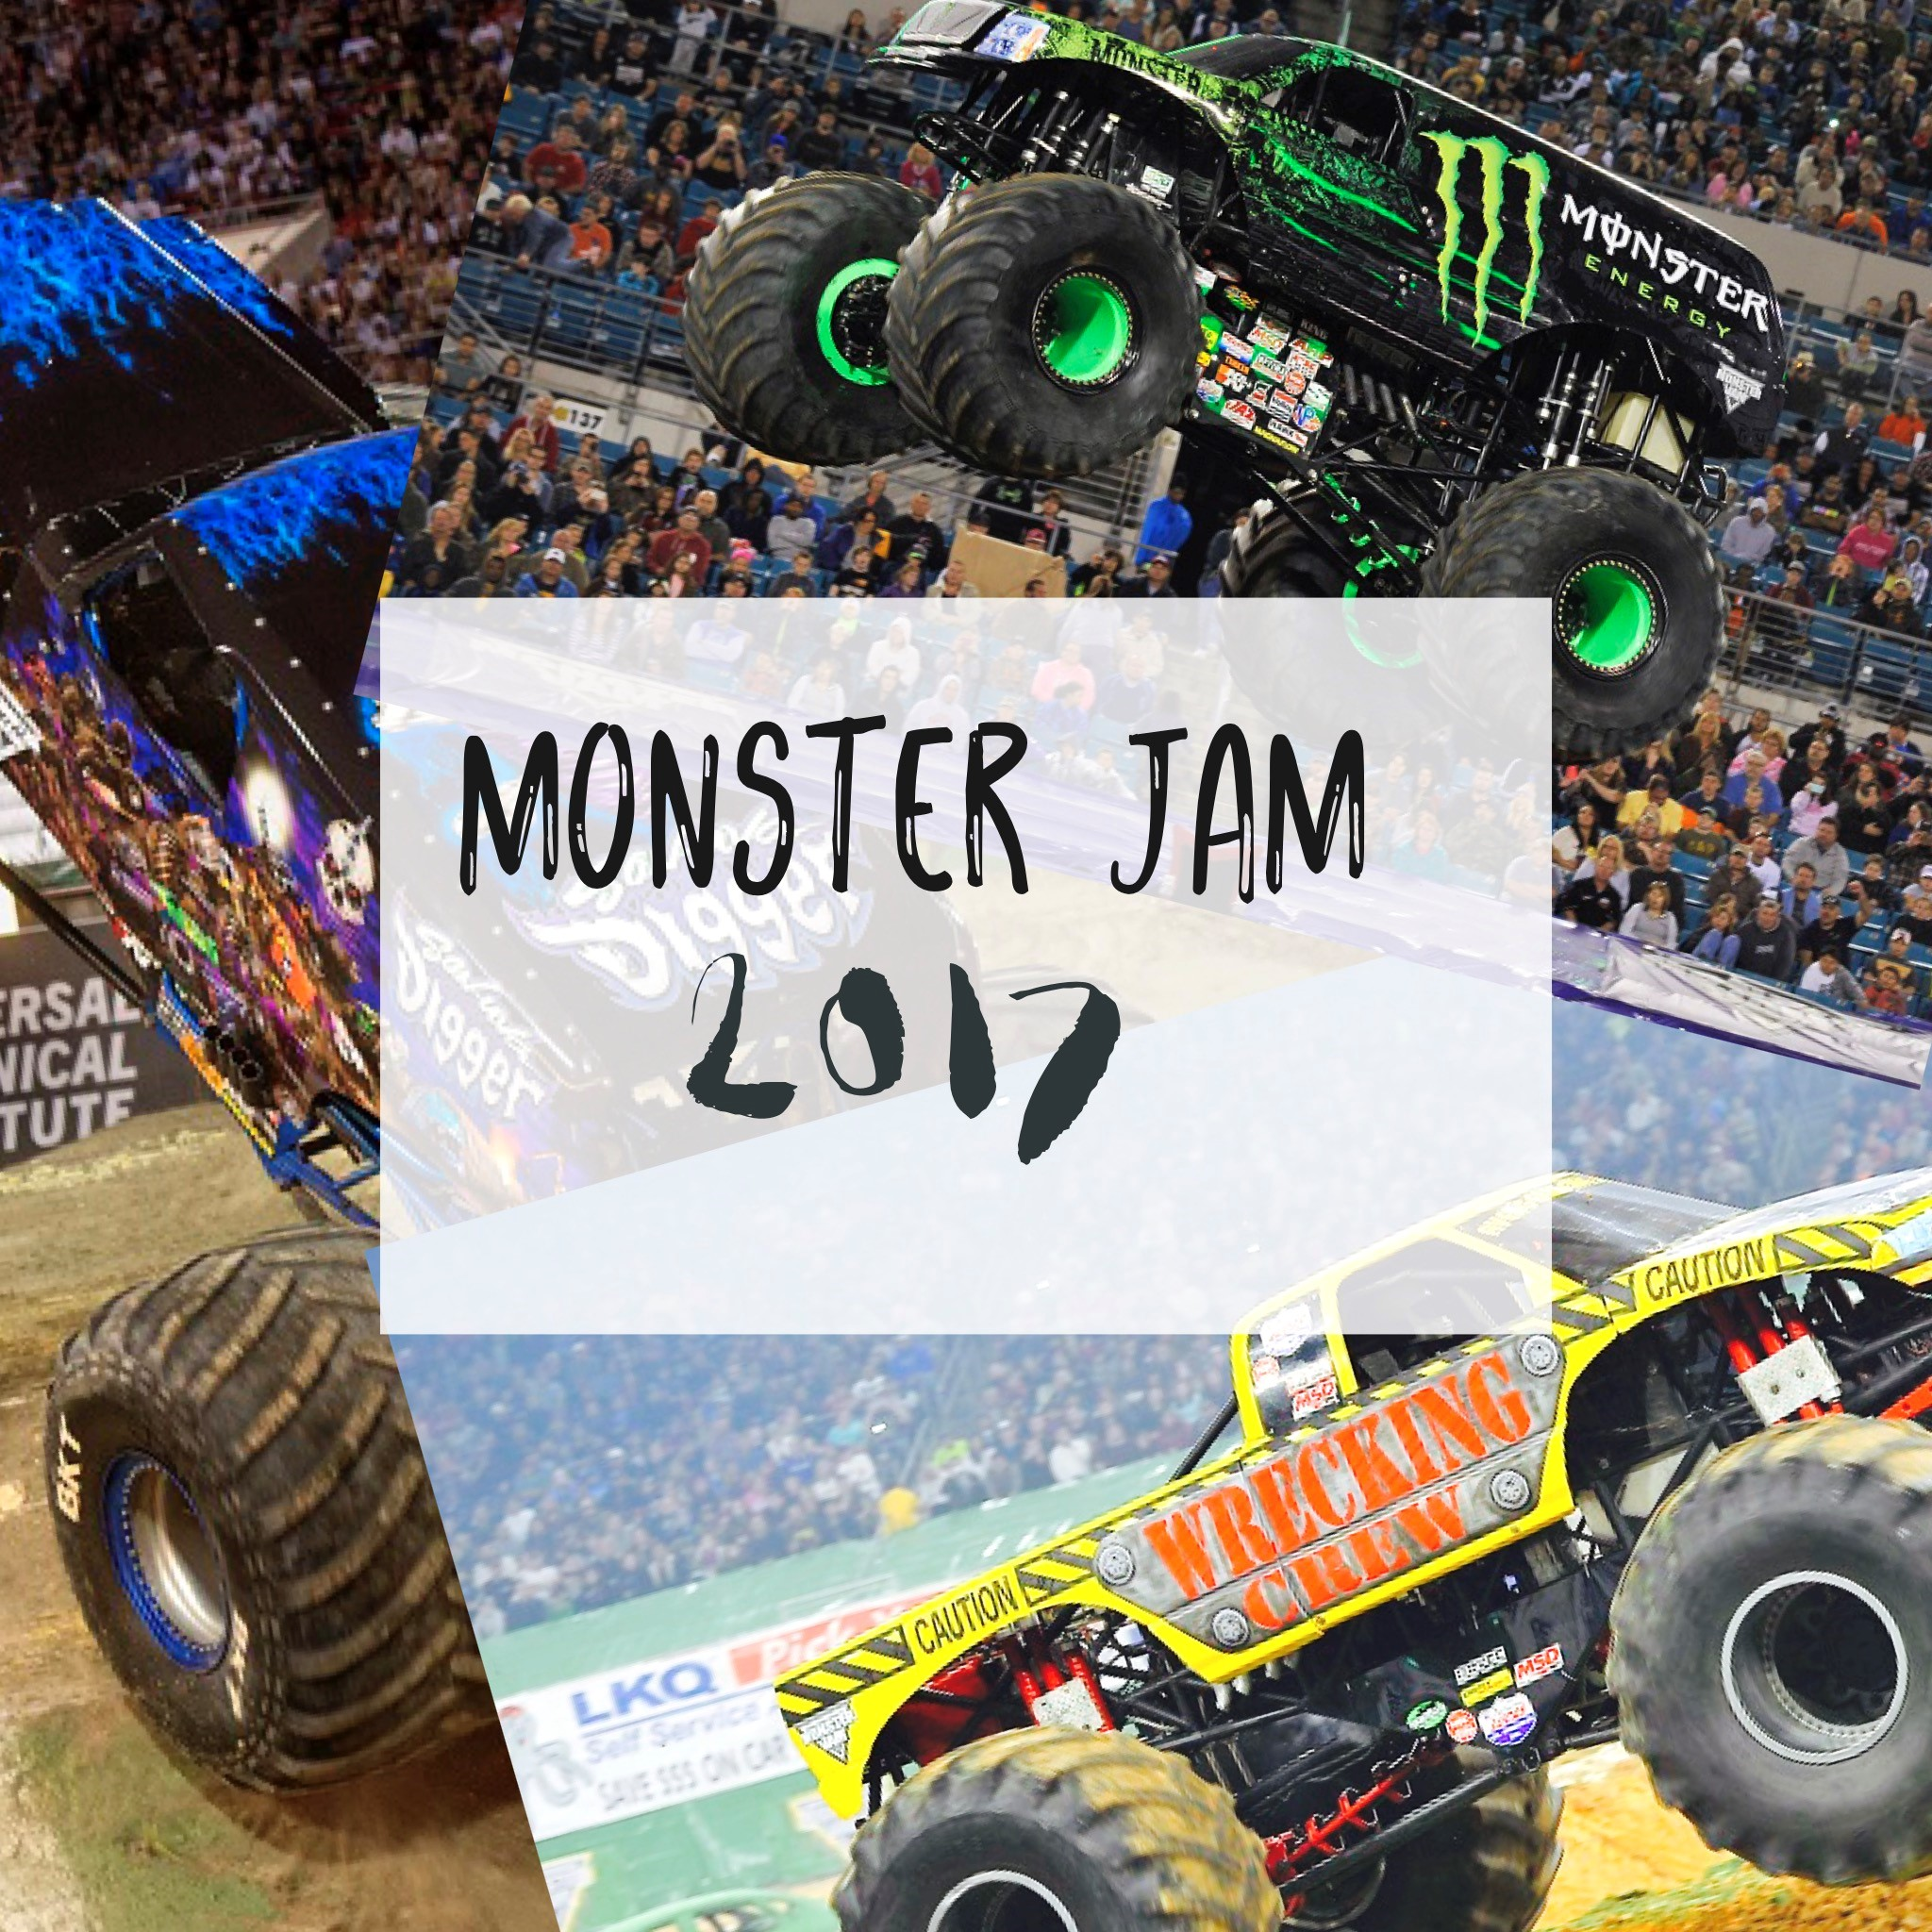 monster jam, monster jam 2017, grave digger, monster trucks